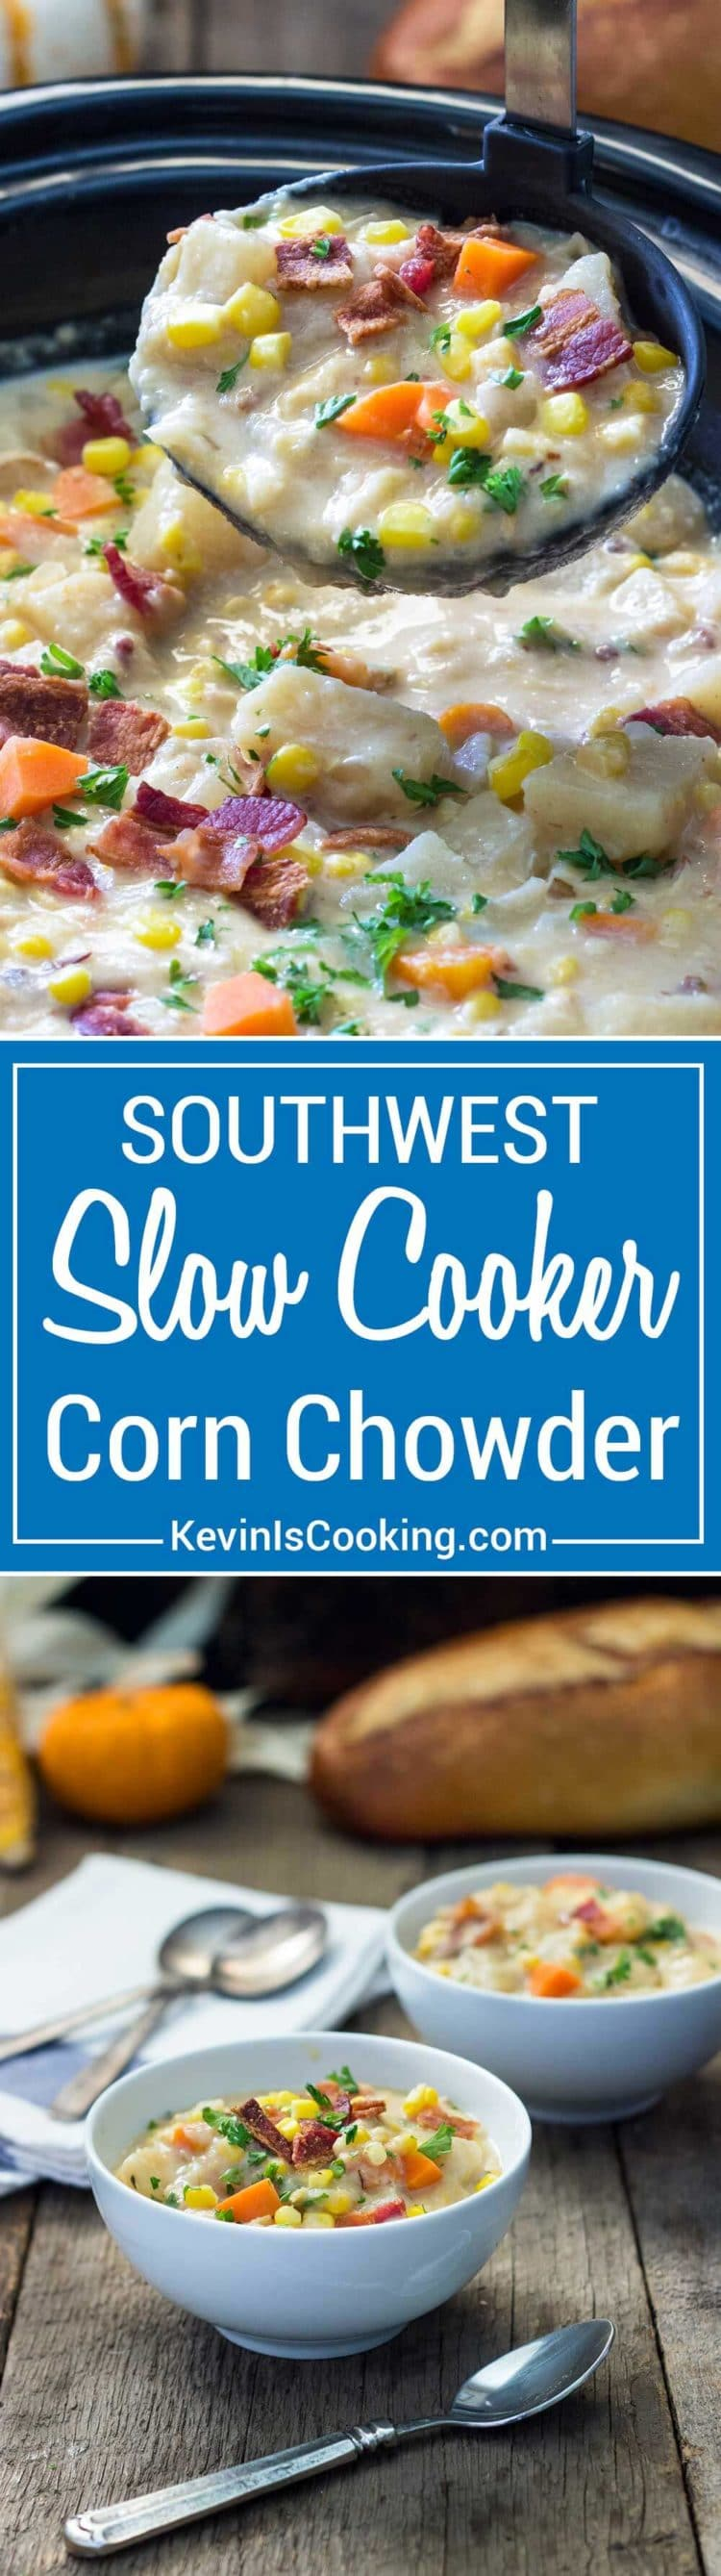 Thick and creamy with chunks of potatoes, corn and carrots this Southwest Slow Cooker Corn Chowder gets a kick from a chipotle pepper and uses no cream or butter!